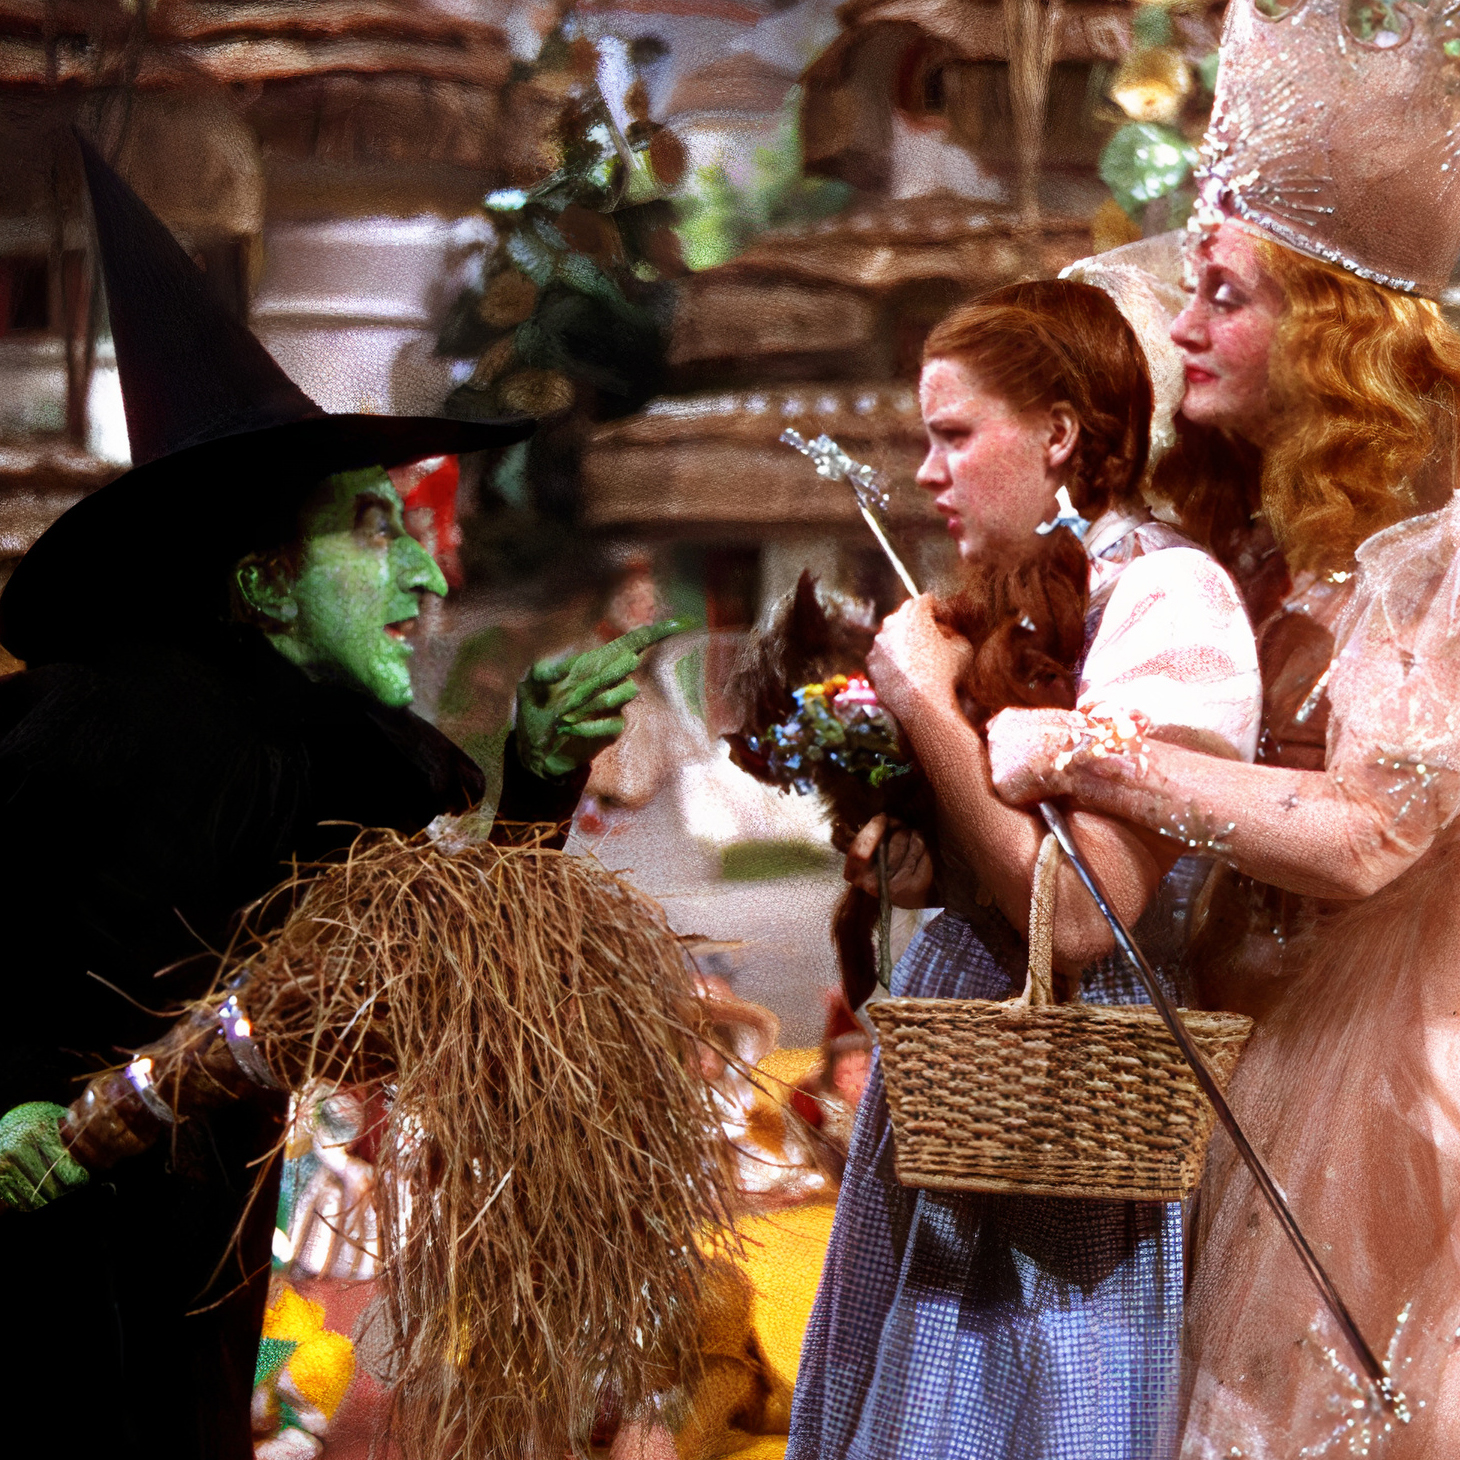 Visiting the Land of Oz: A Study of the Archetypes of an American Myth